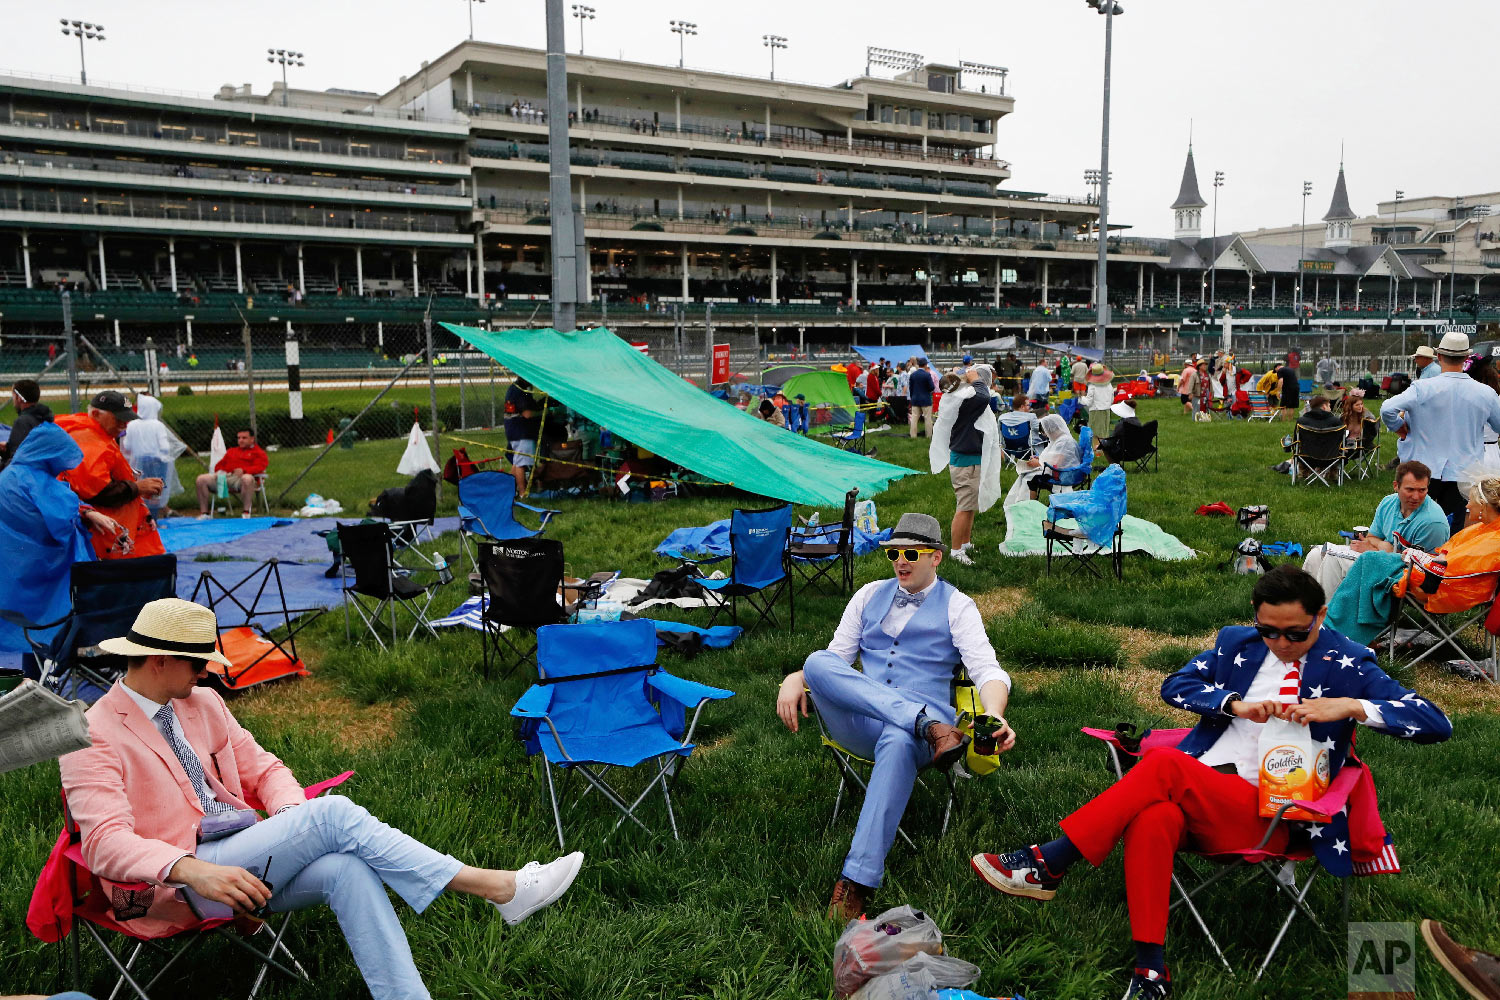 Fans relax in the infield before the 144th running of the Kentucky Derby horse race at Churchill Downs Saturday, May 5, 2018, in Louisville, Ky. (AP Photo/John Minchillo)